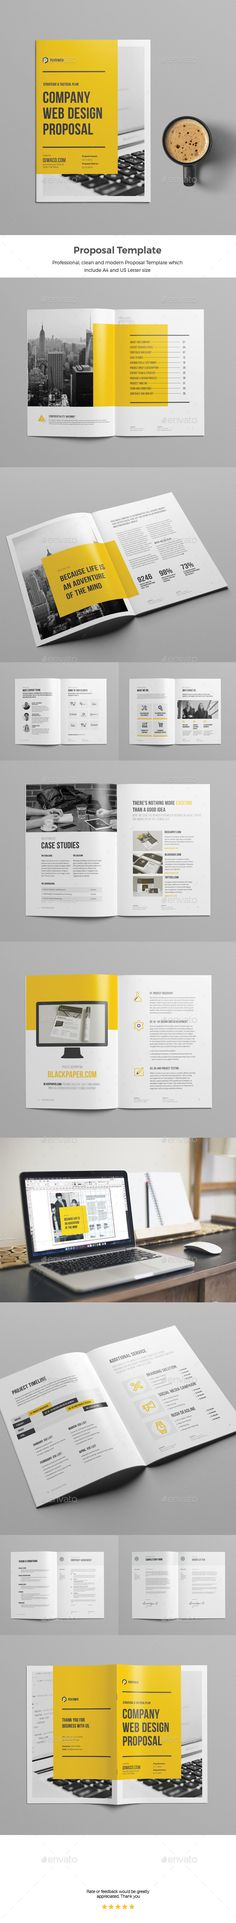 Social Media Proposal Proposals, Proposal templates and Template